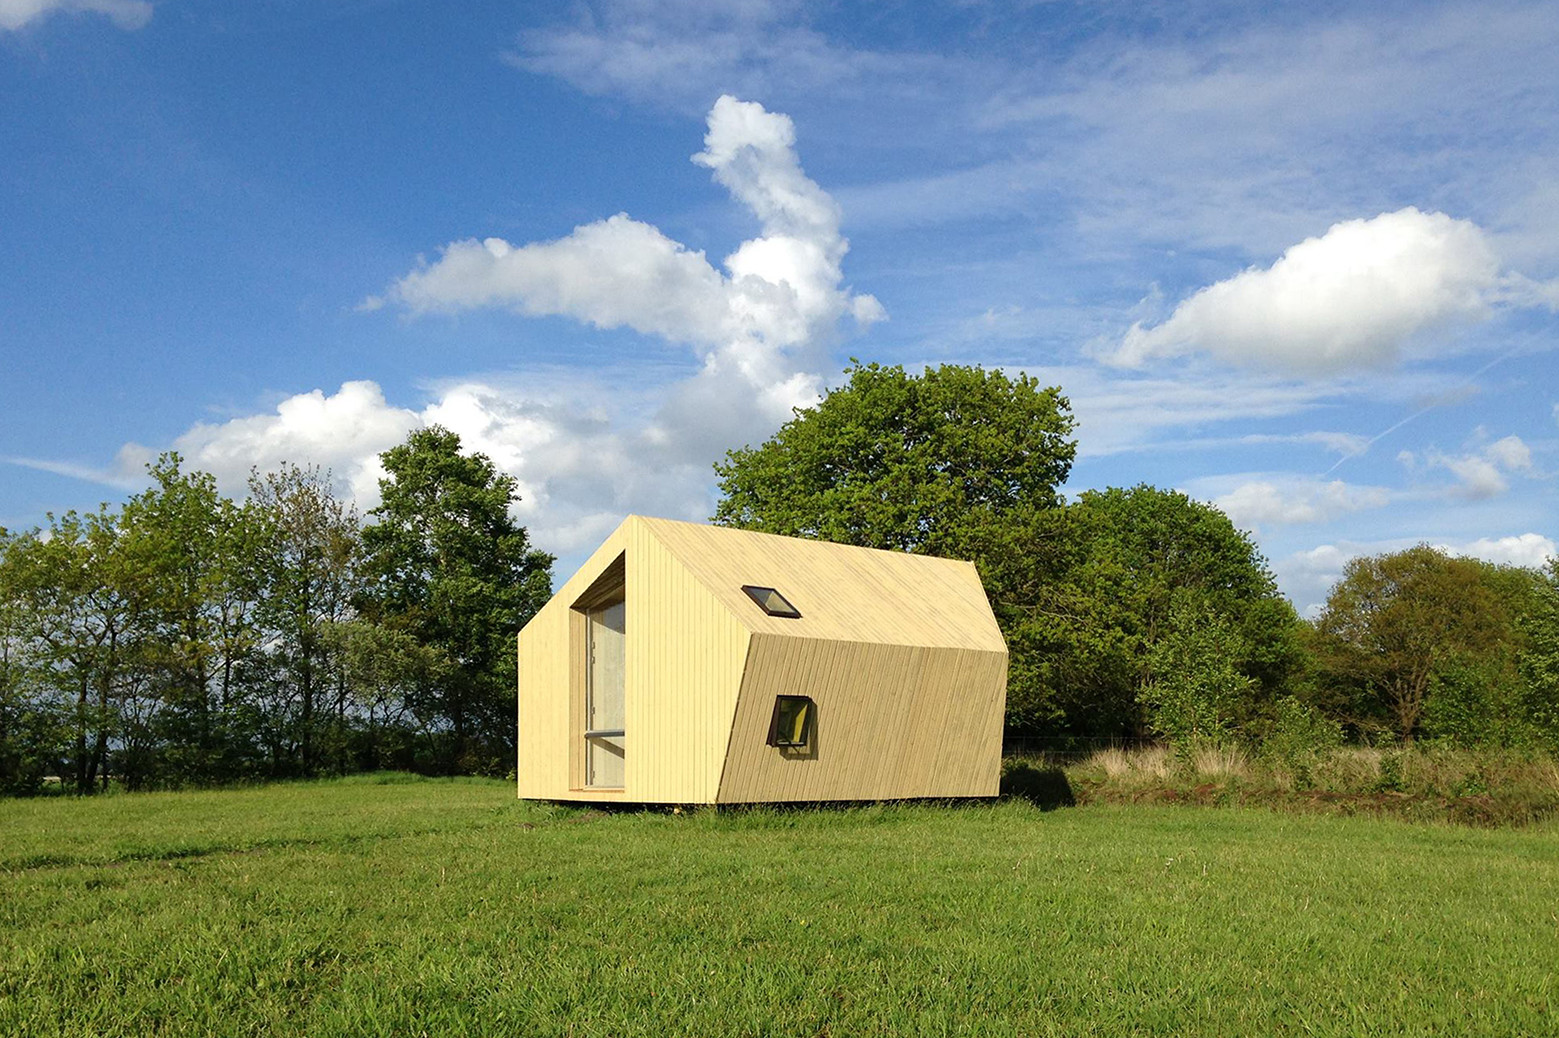 Cabañas para excursionistas Trek-In / MoodBuilders + Kristel Hermans Architectuur, Cortesía de Campsite